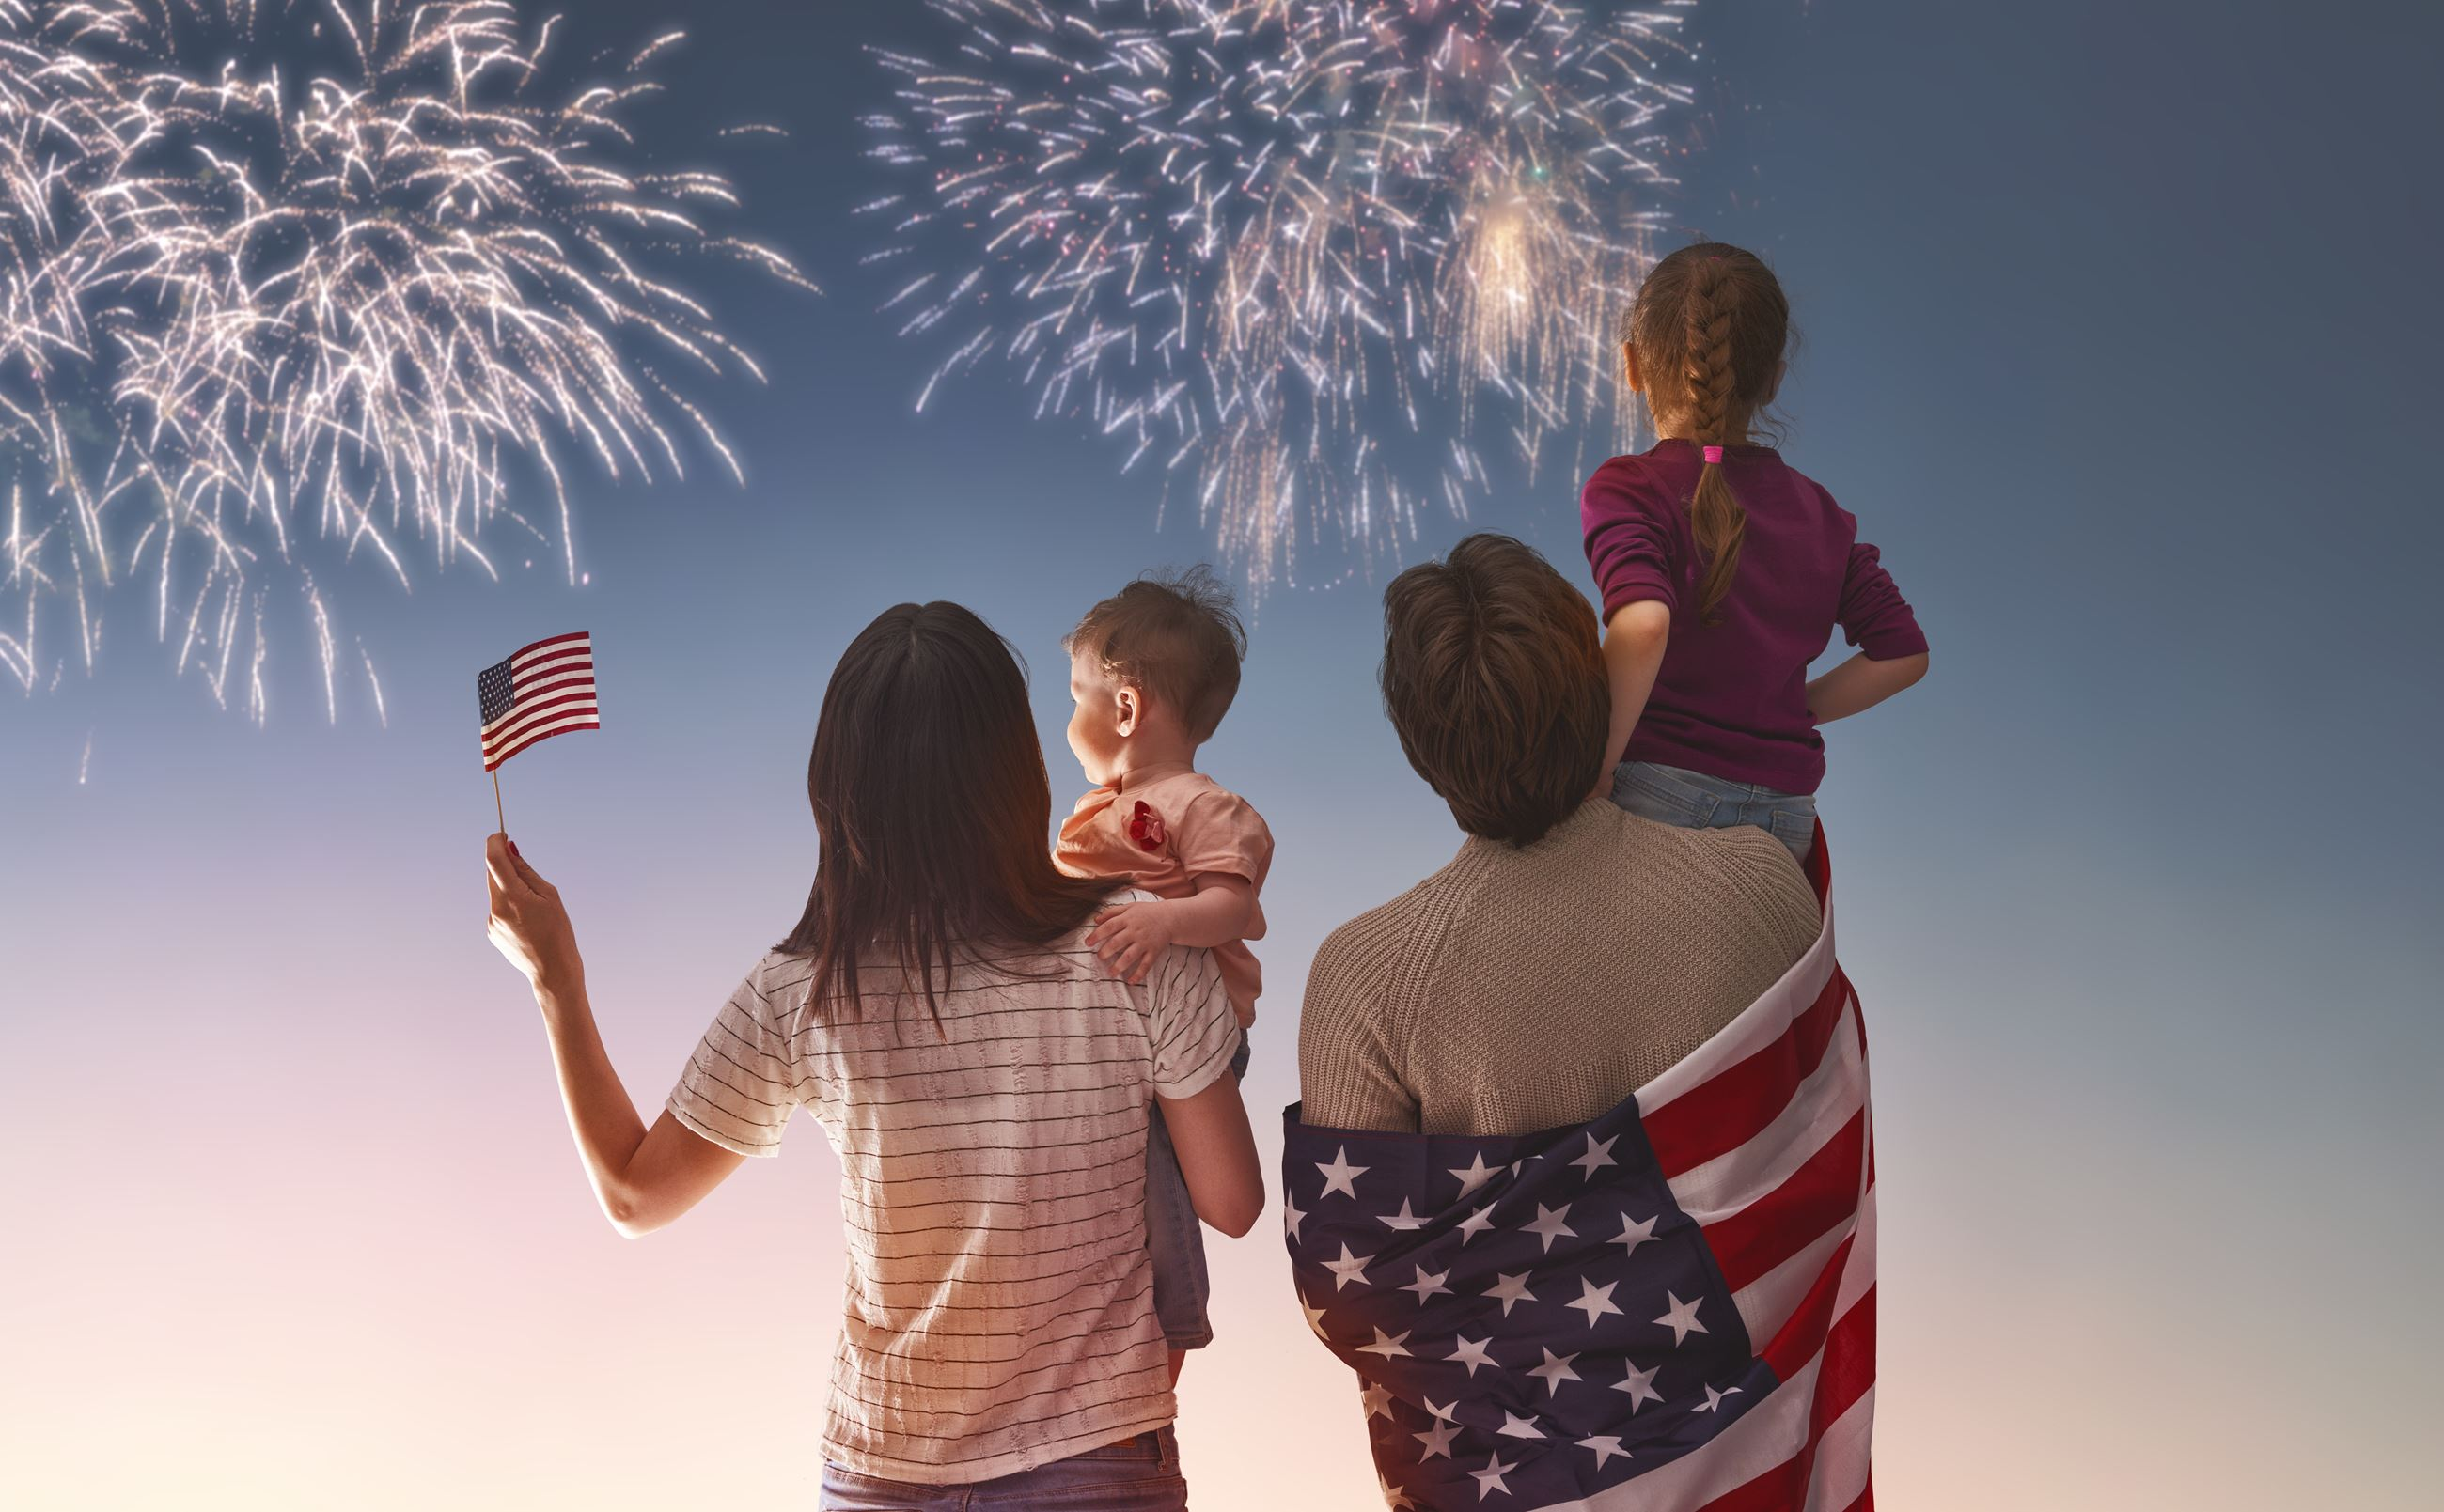 Two adults holding two kids watching fireworks show